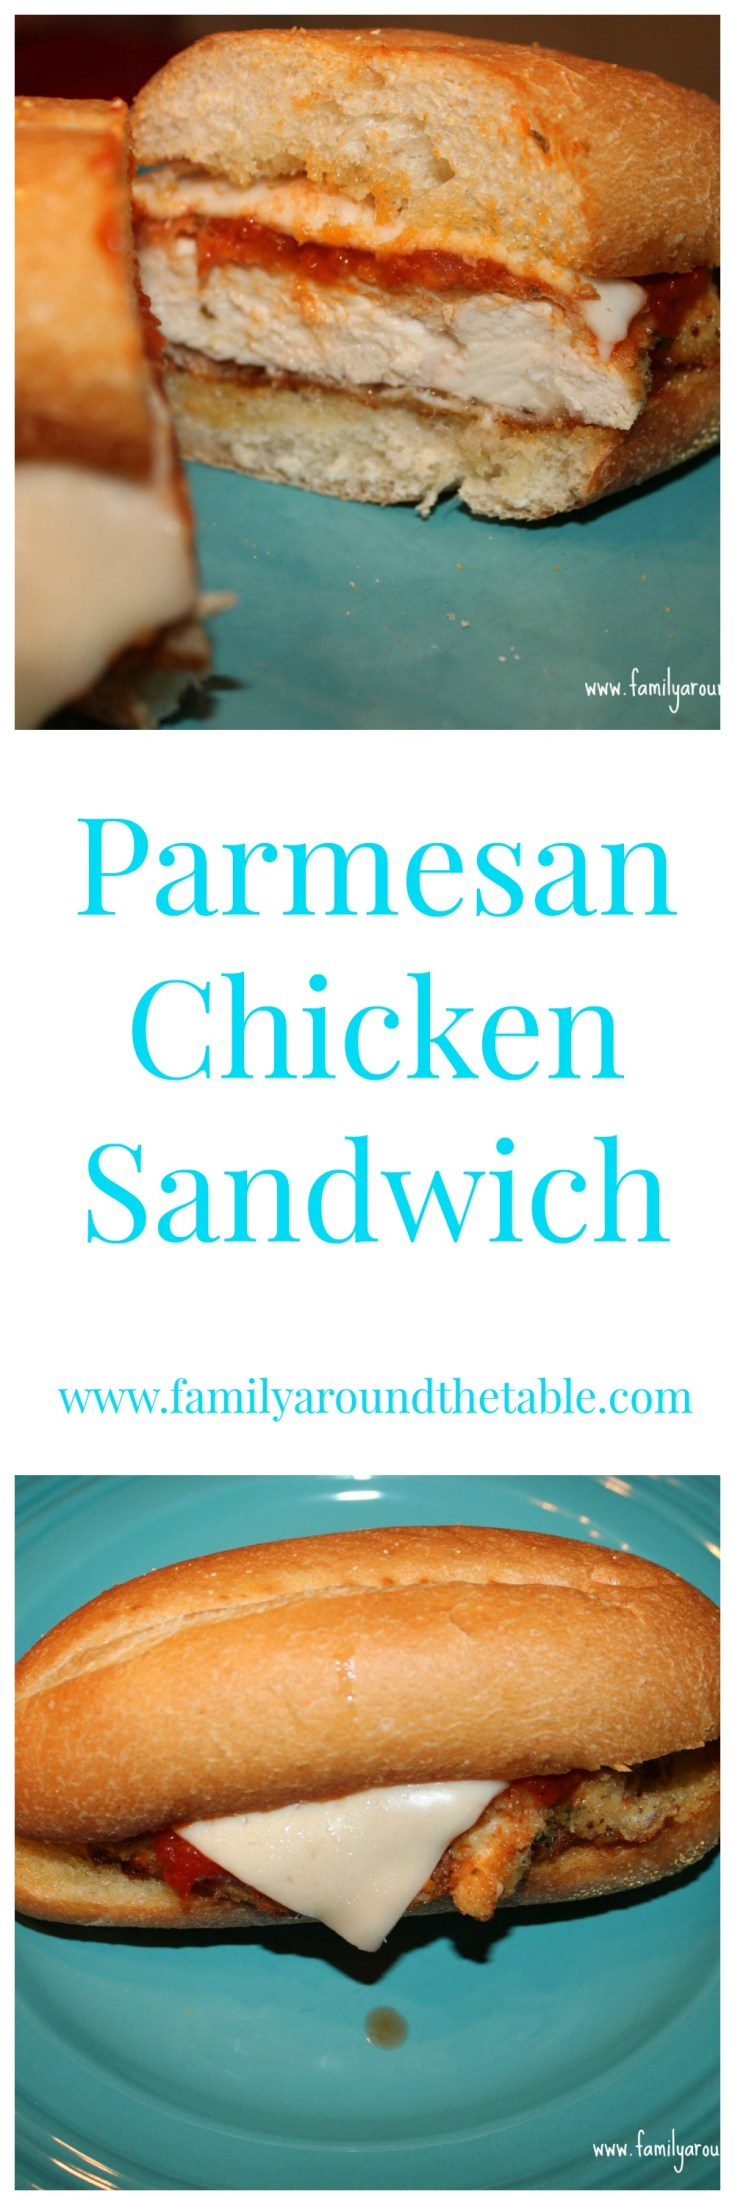 These Parmesan Chicken Sandwiches are a quick weeknight dinner or weekend lunch.